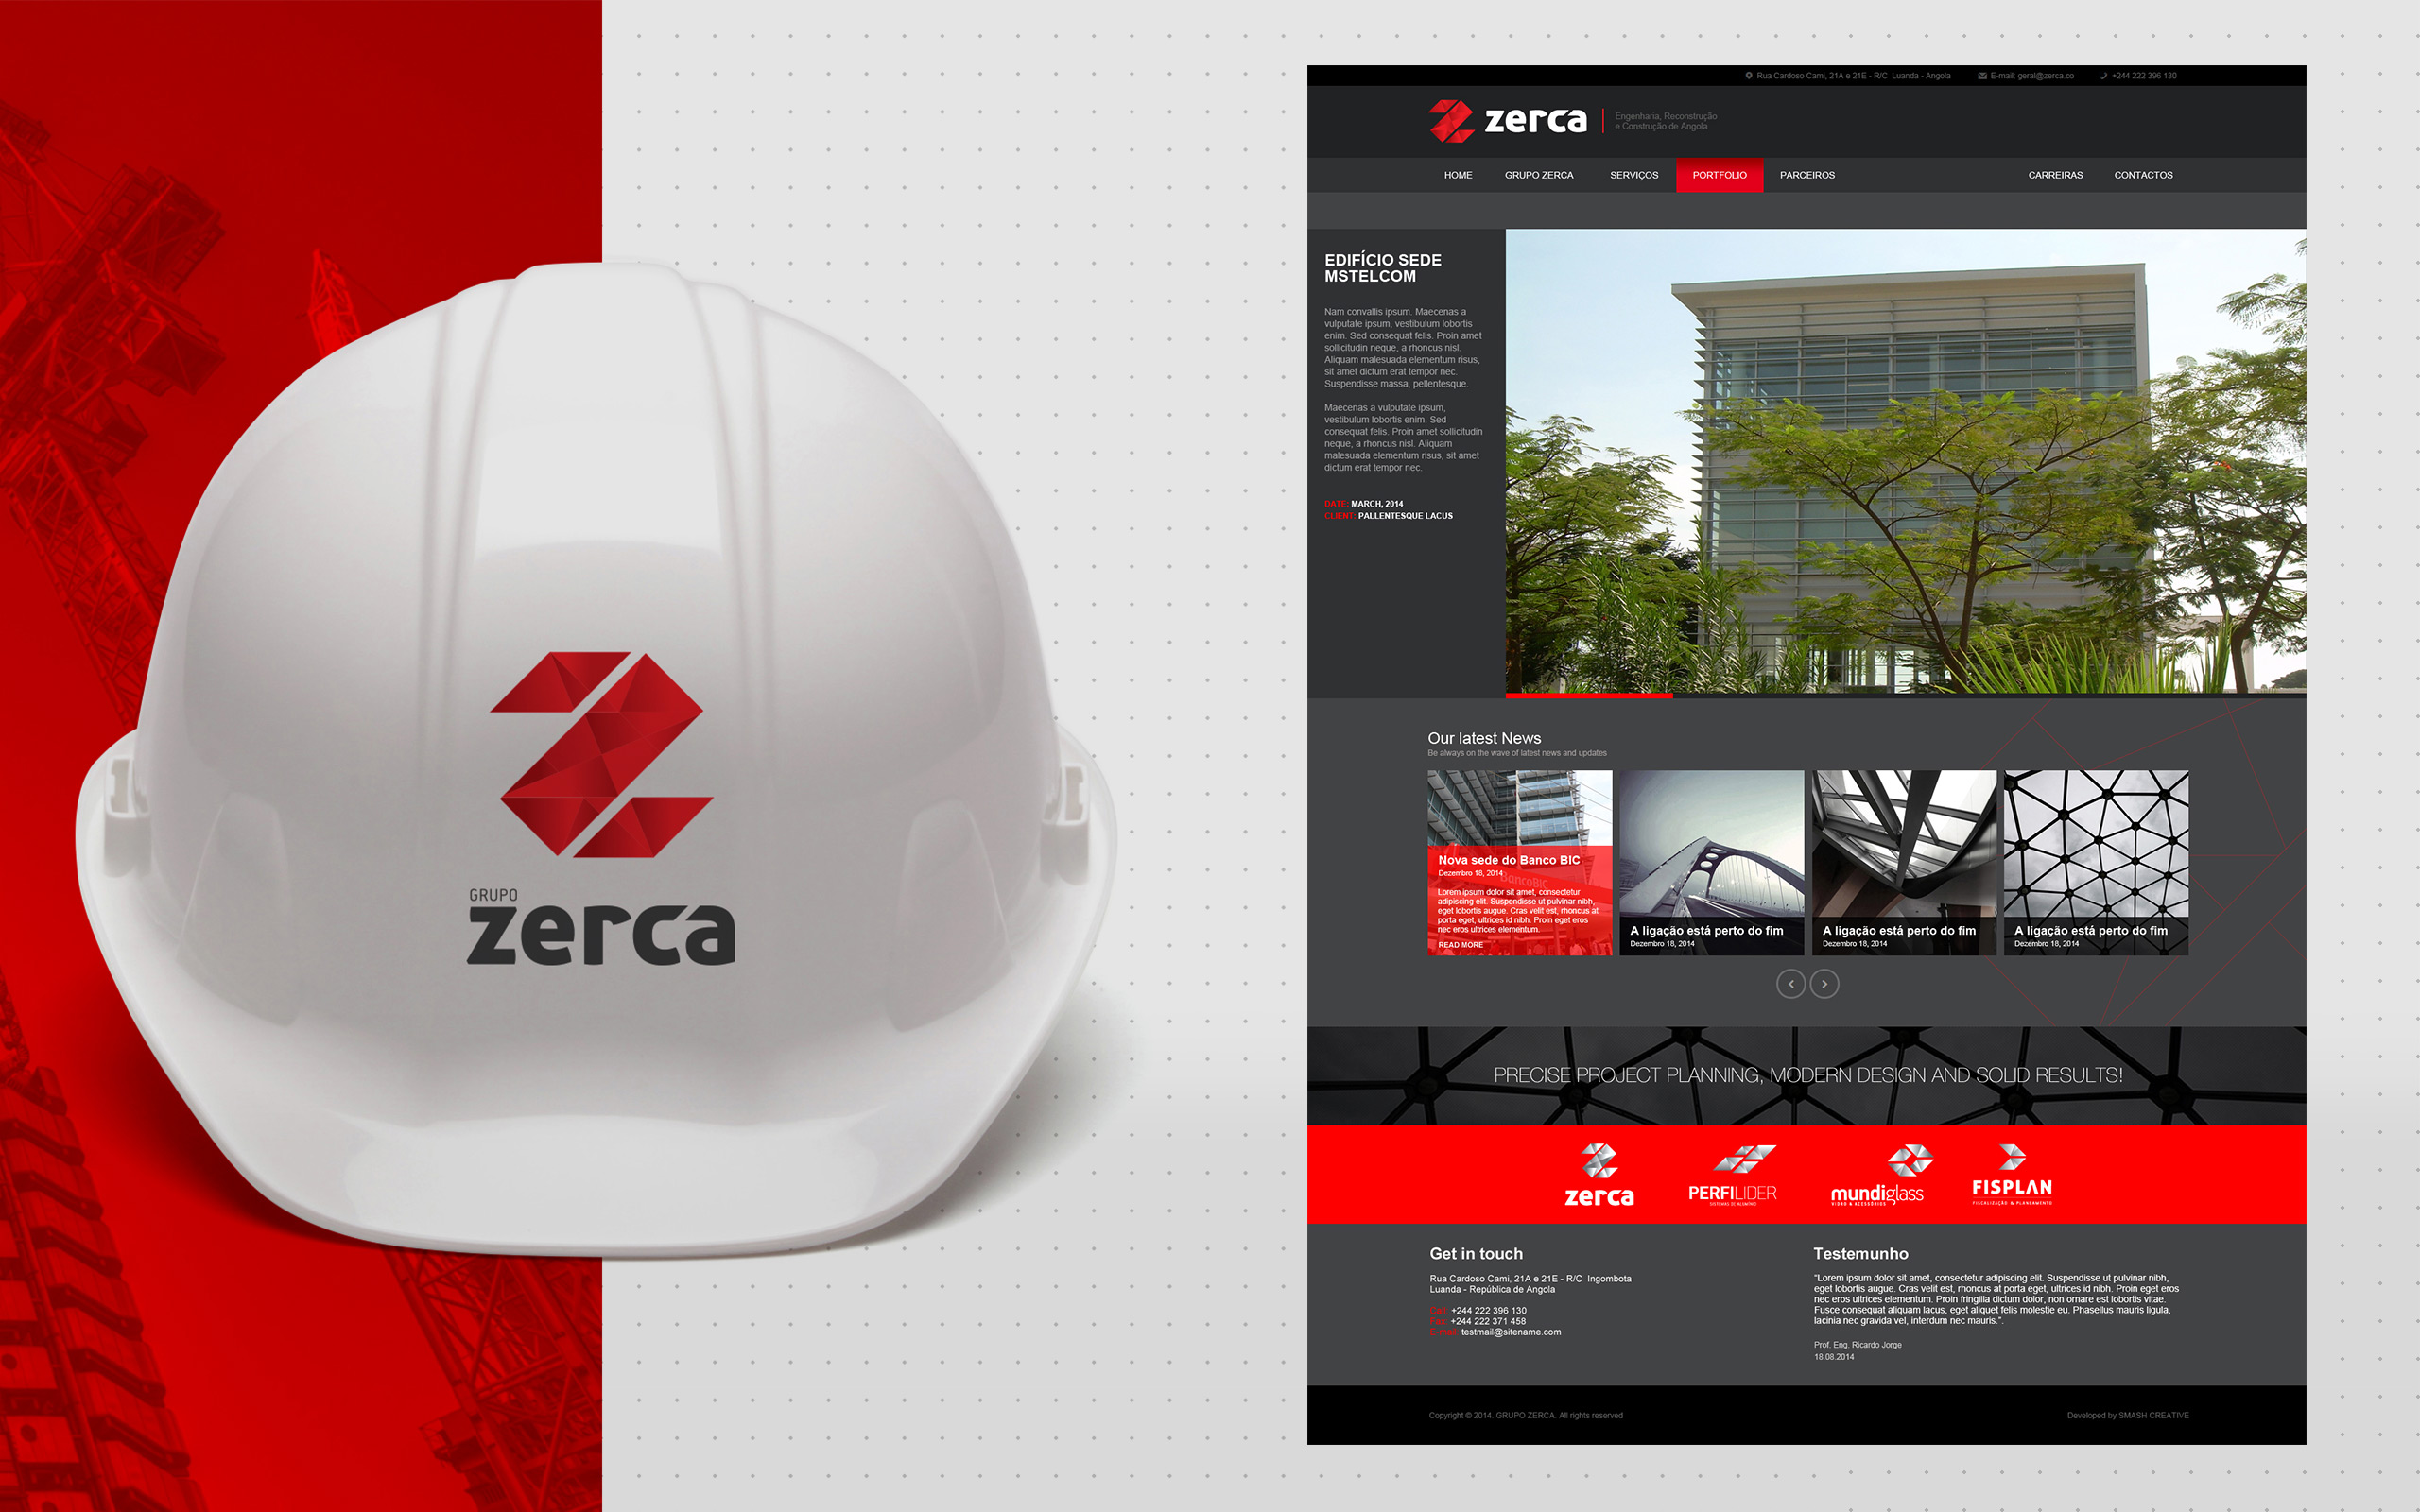 L_smash_Zerca_site_3